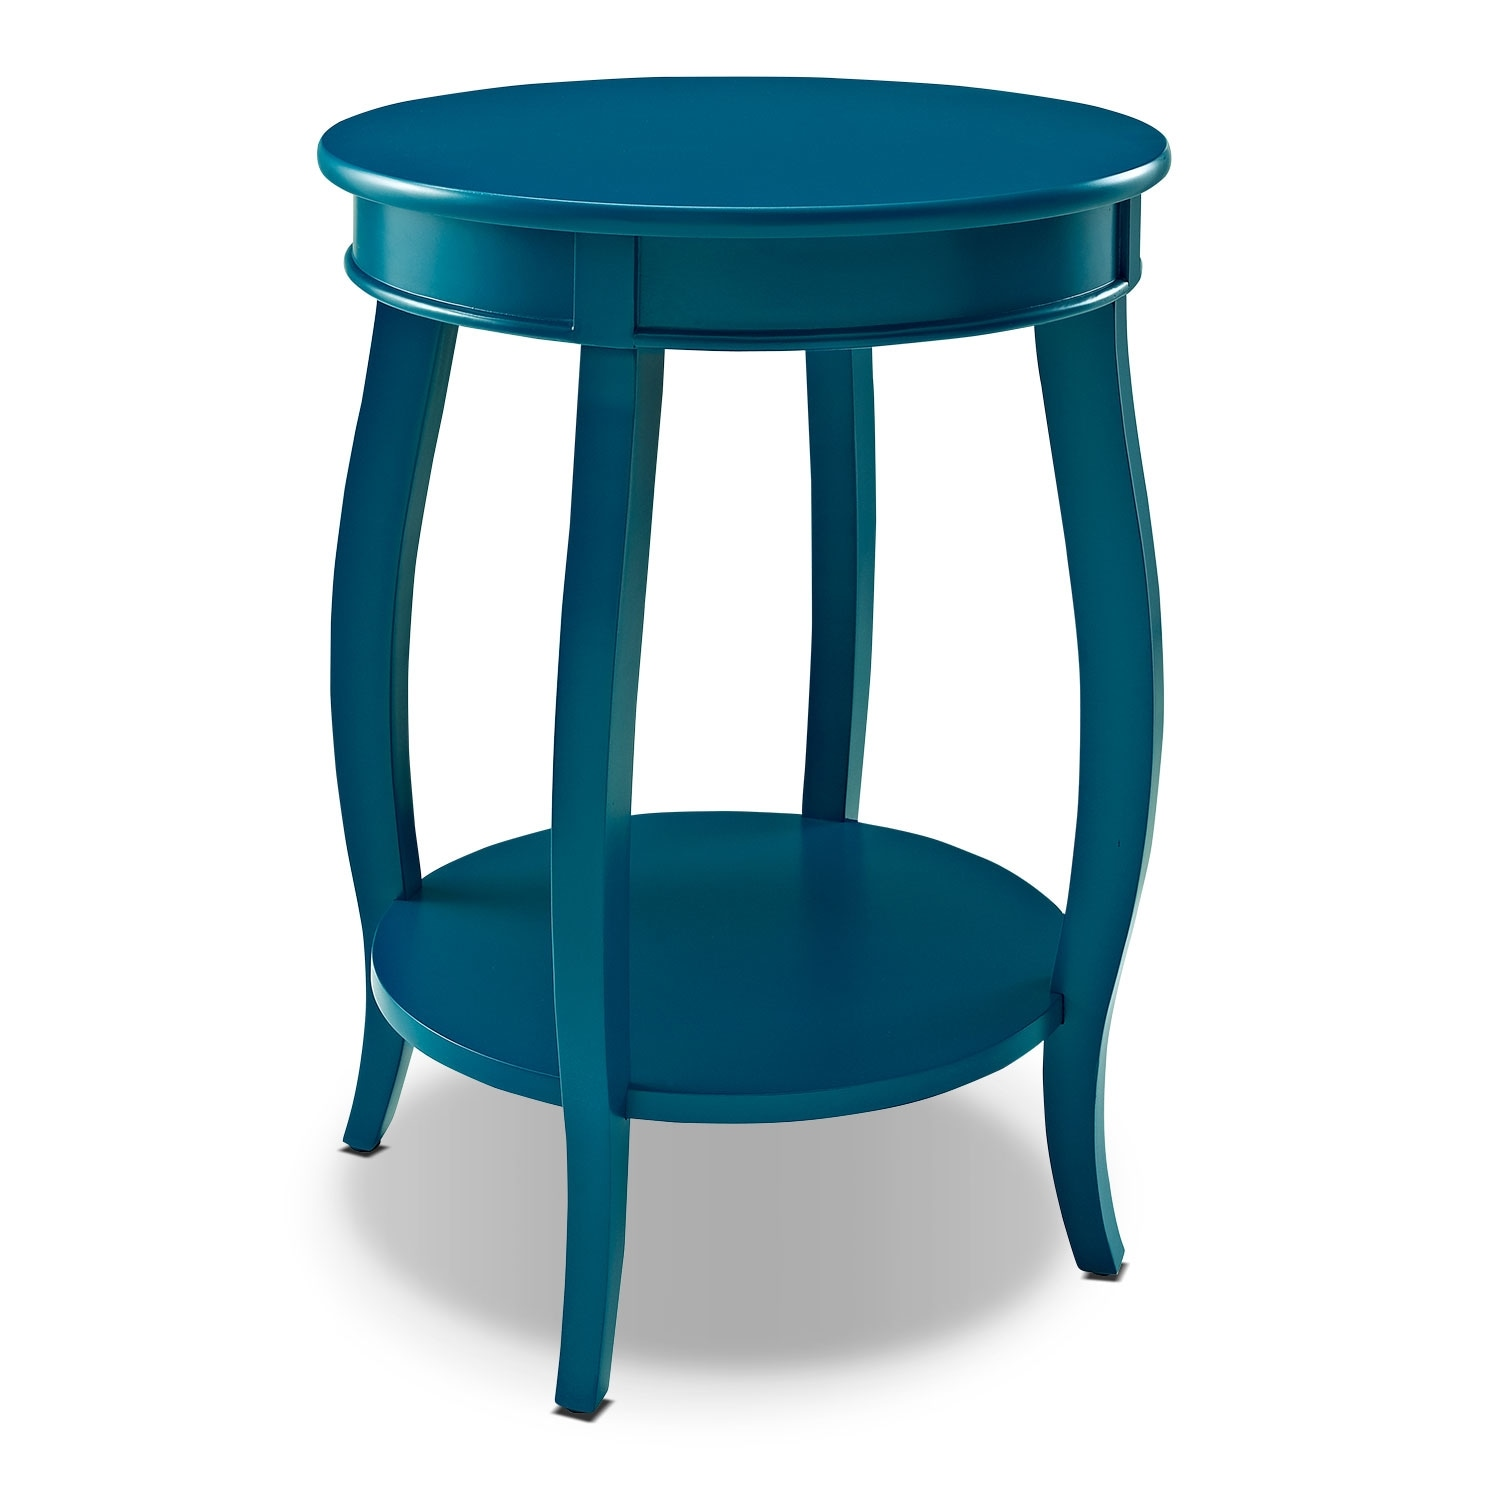 furniture decorative tall colored modern outdoor bench ott target threshold sage green room teal cabinet and for white storage living kijiji glass accent tables round table full